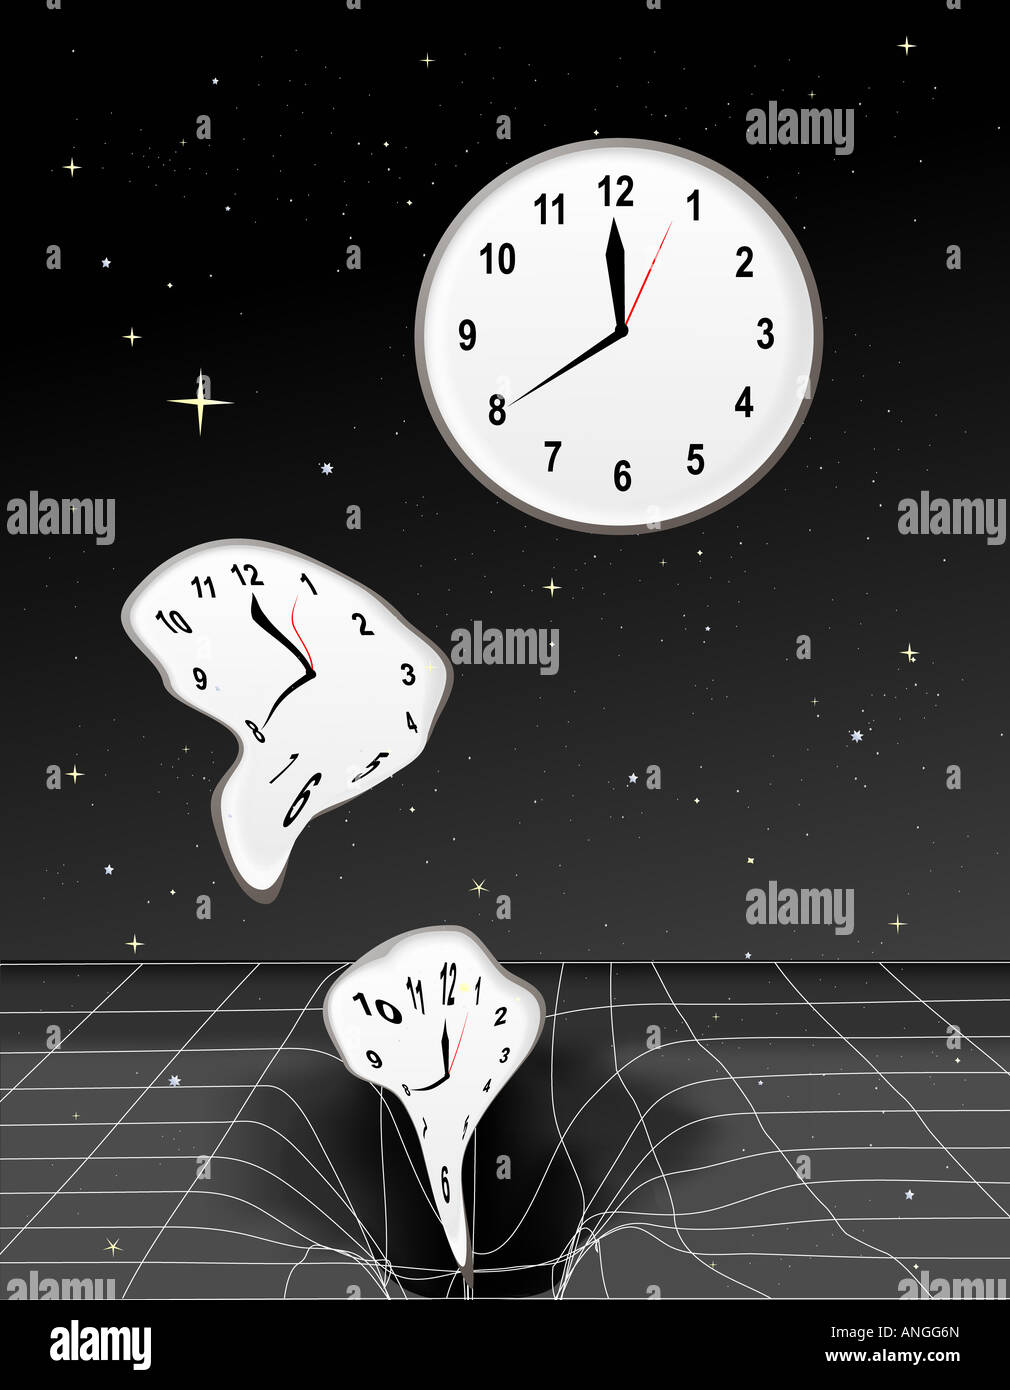 Clocks getting warped and falling into a black hole - Stock Image